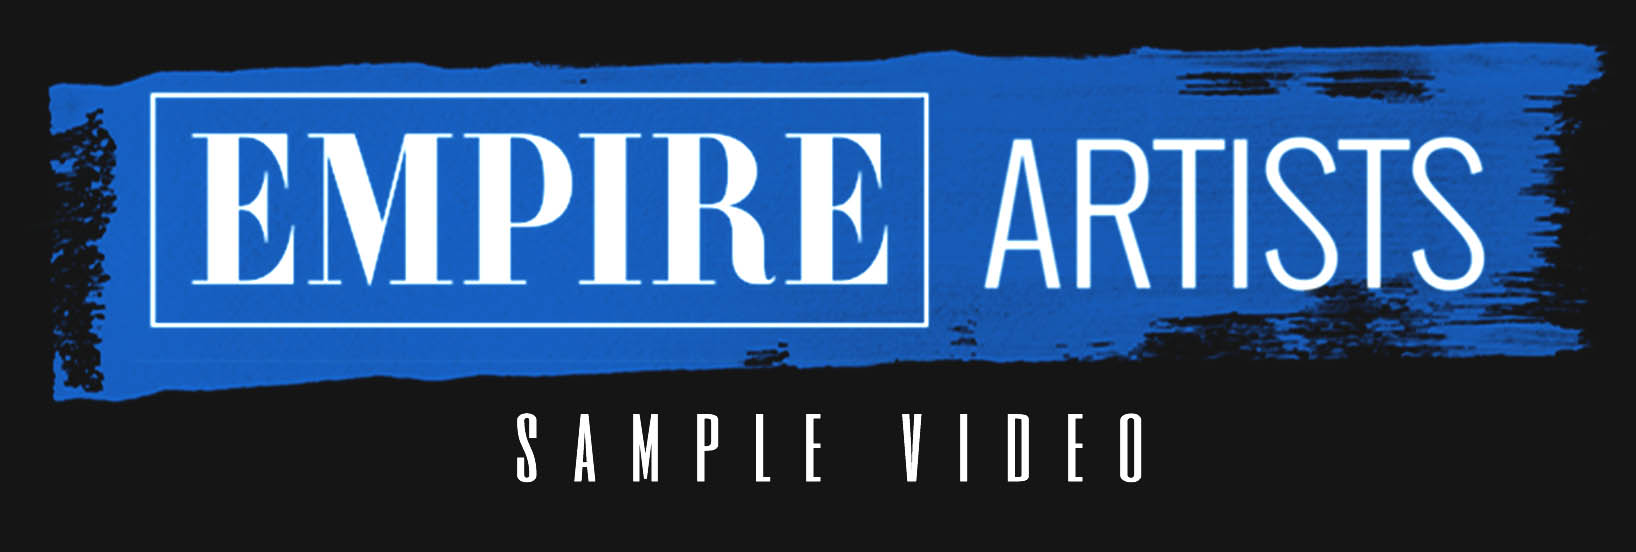 EMPIRE artists_project